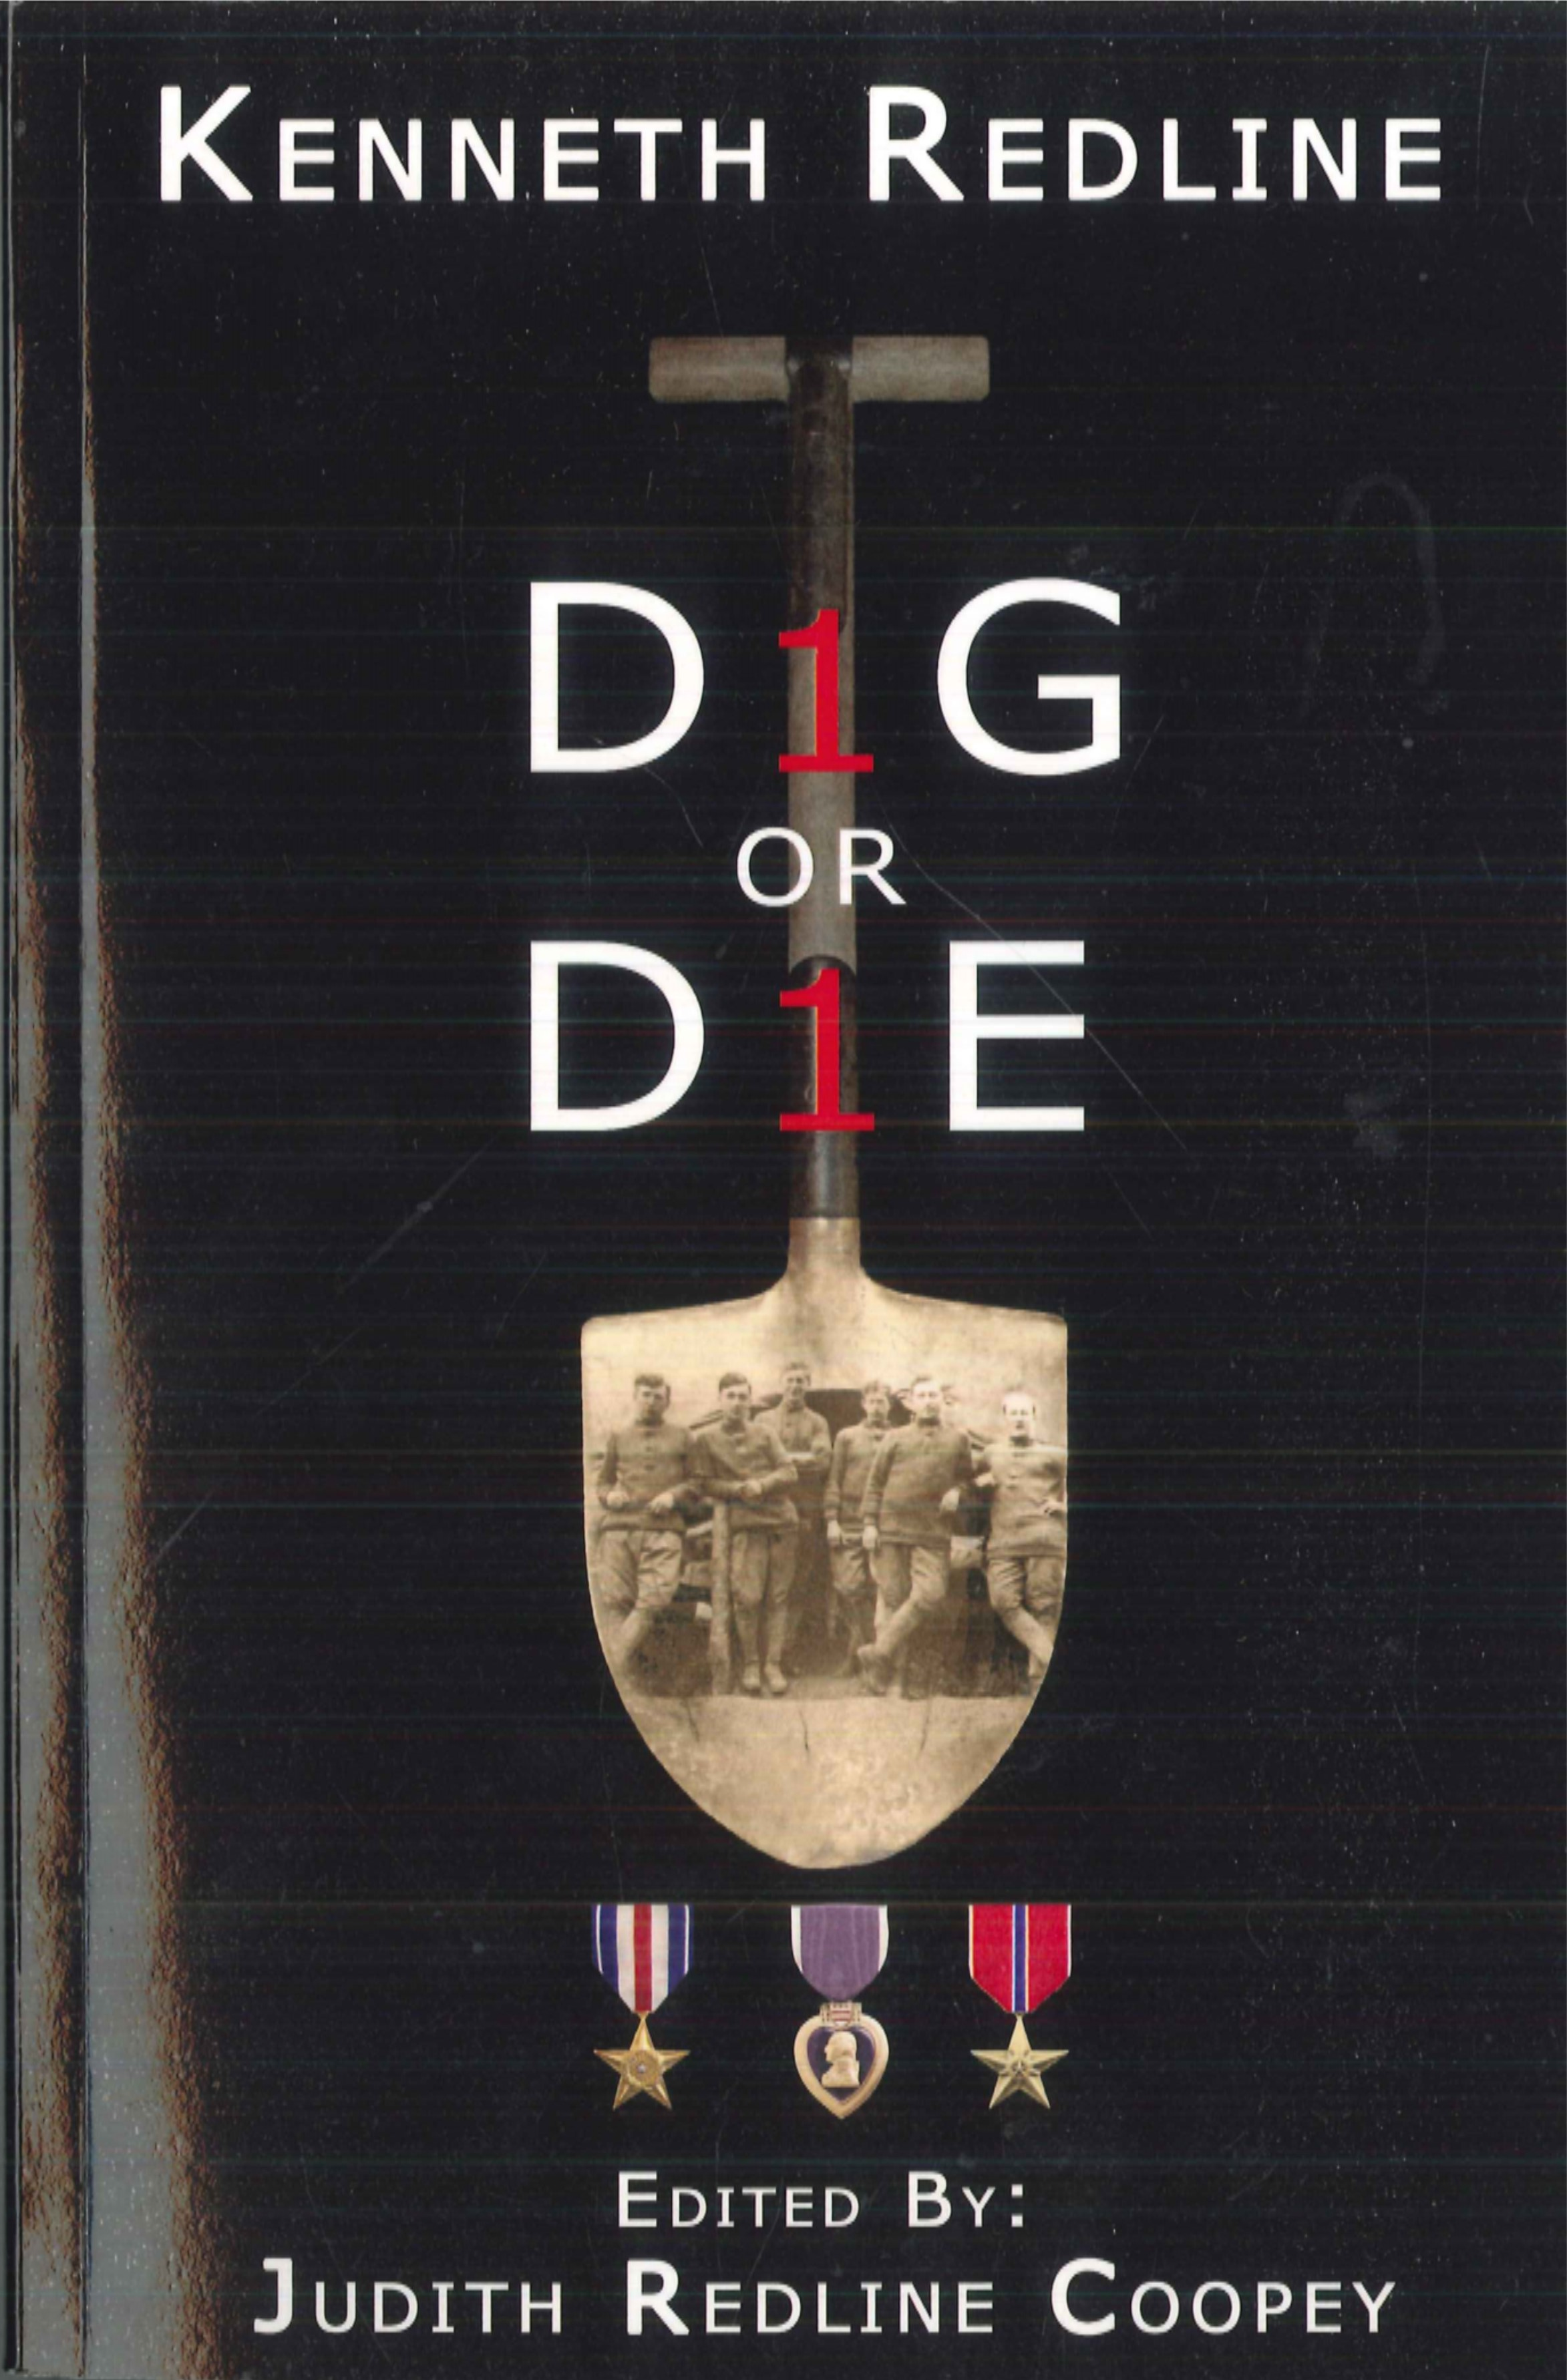 Dig Or Die by Kenneth Redline, edited by Judith Redline Coopey